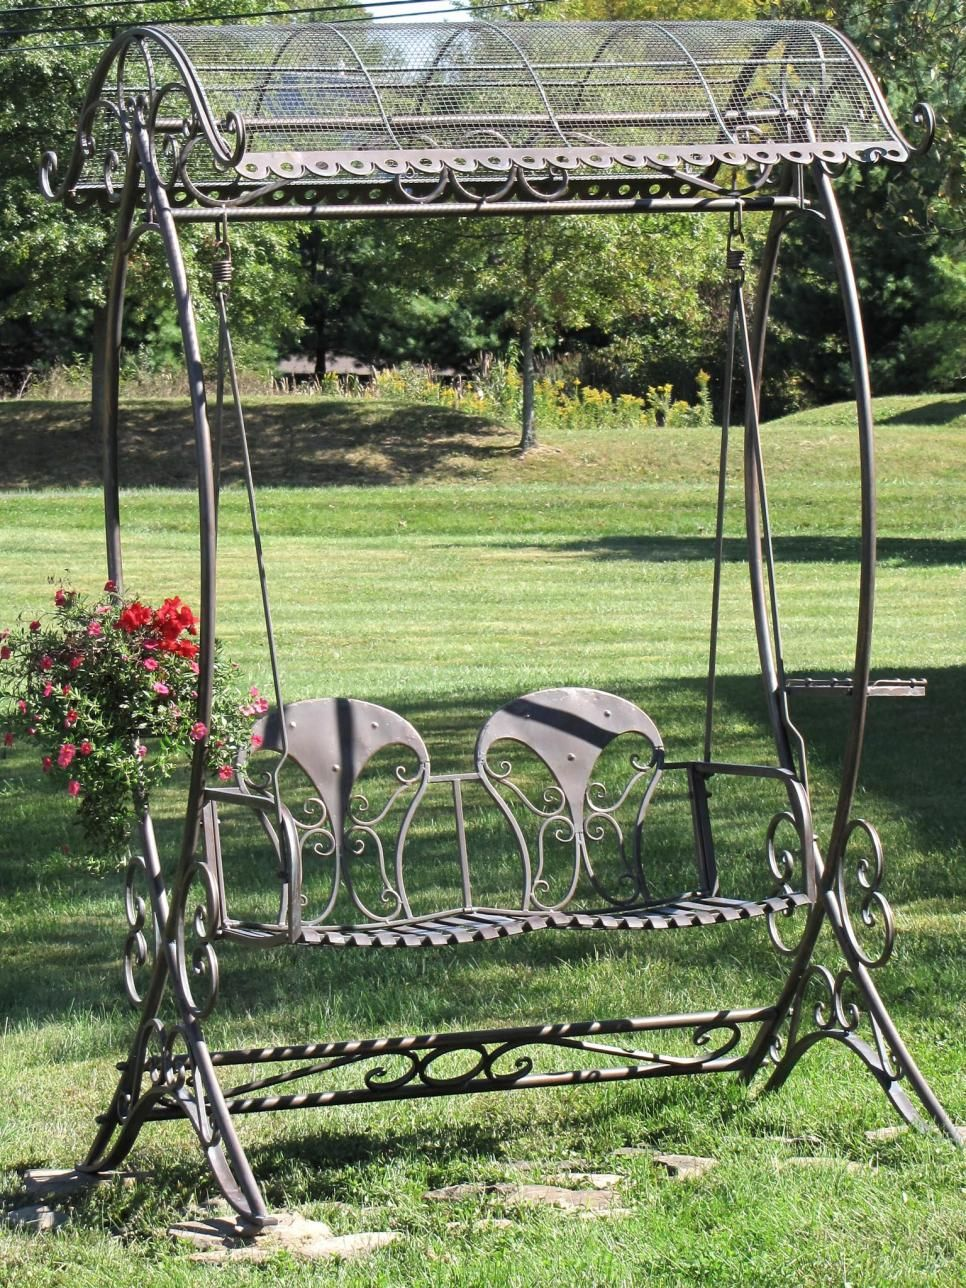 Hgtv is presenting a variety of garden swings in backyards on porches and for waterfront settings